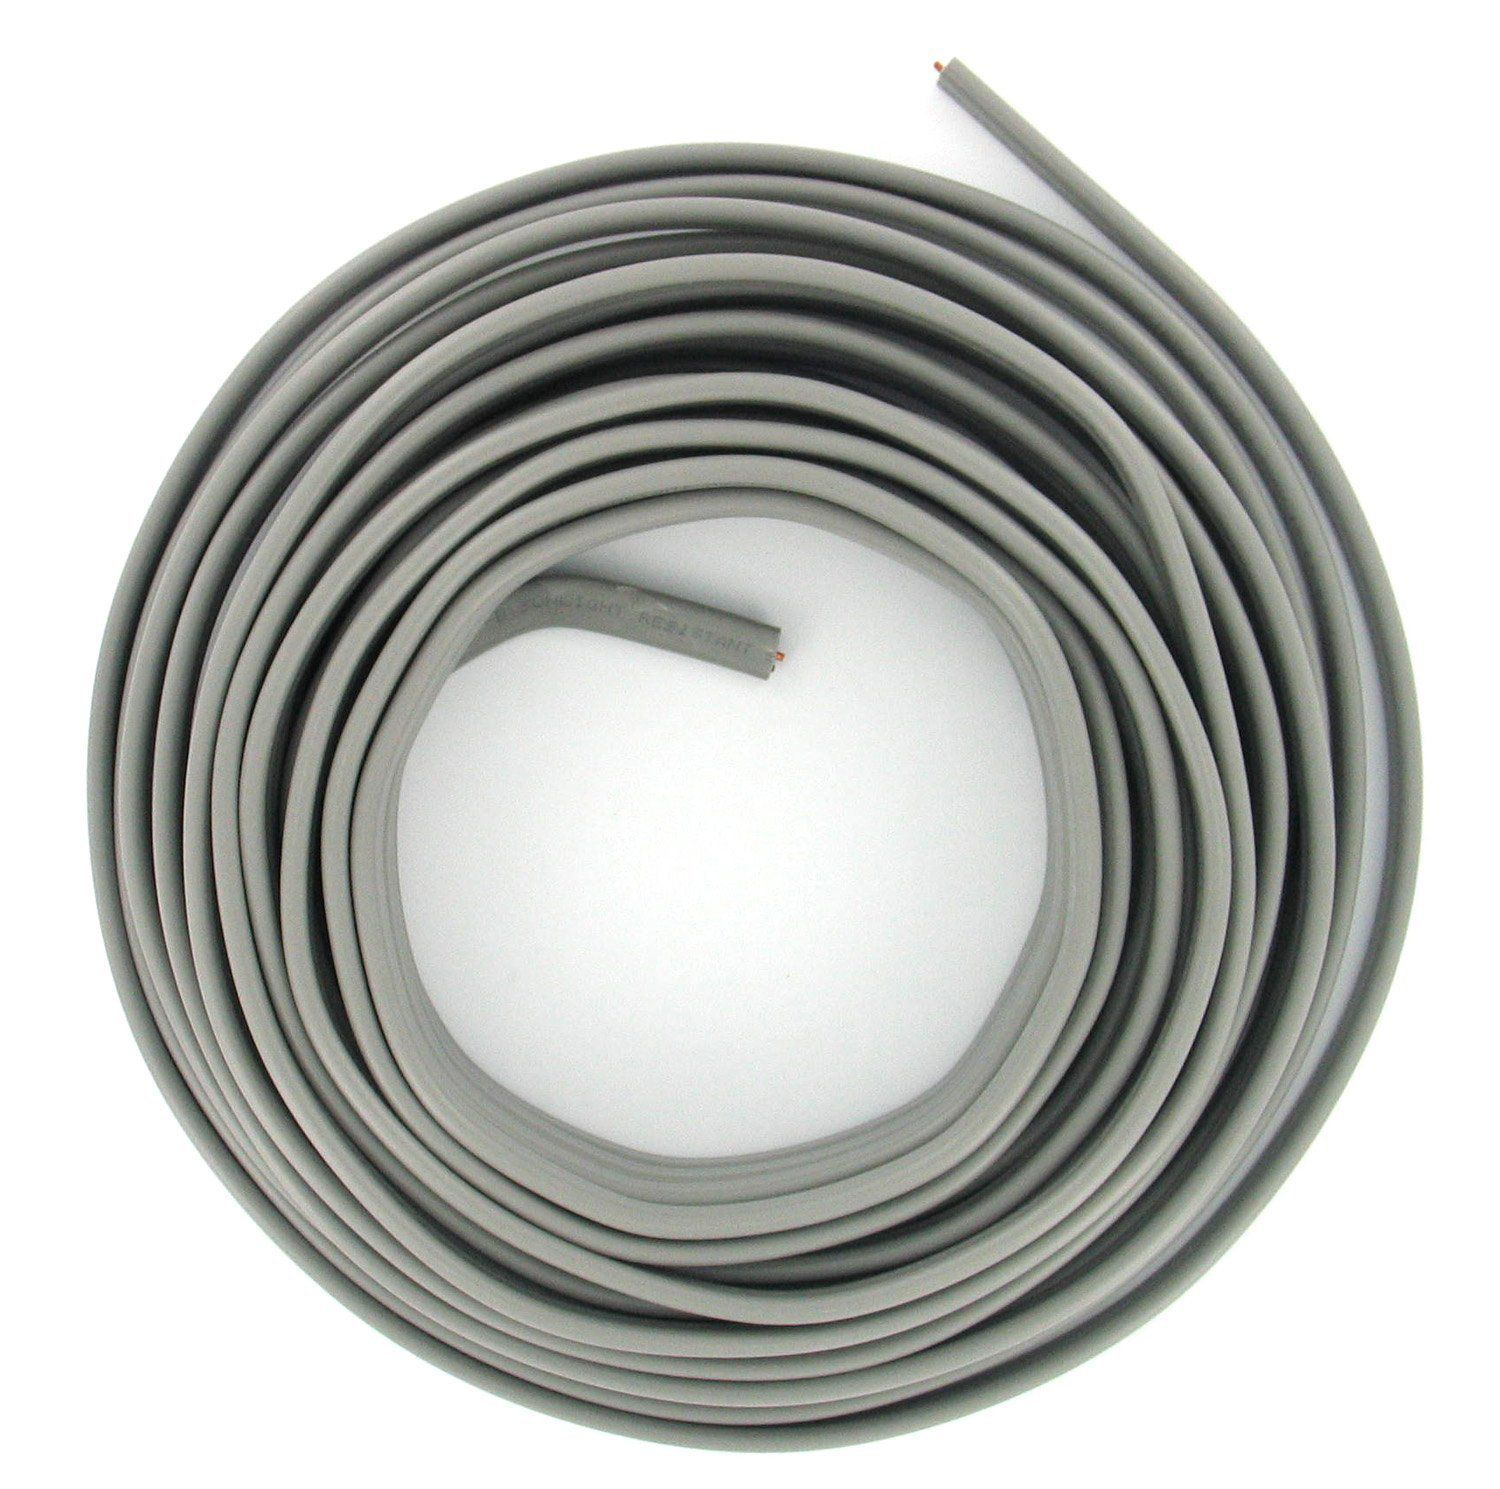 What Is Direct Burial Cable Wiring Duct For Electric Wire Protection Tube Flexible Conduit